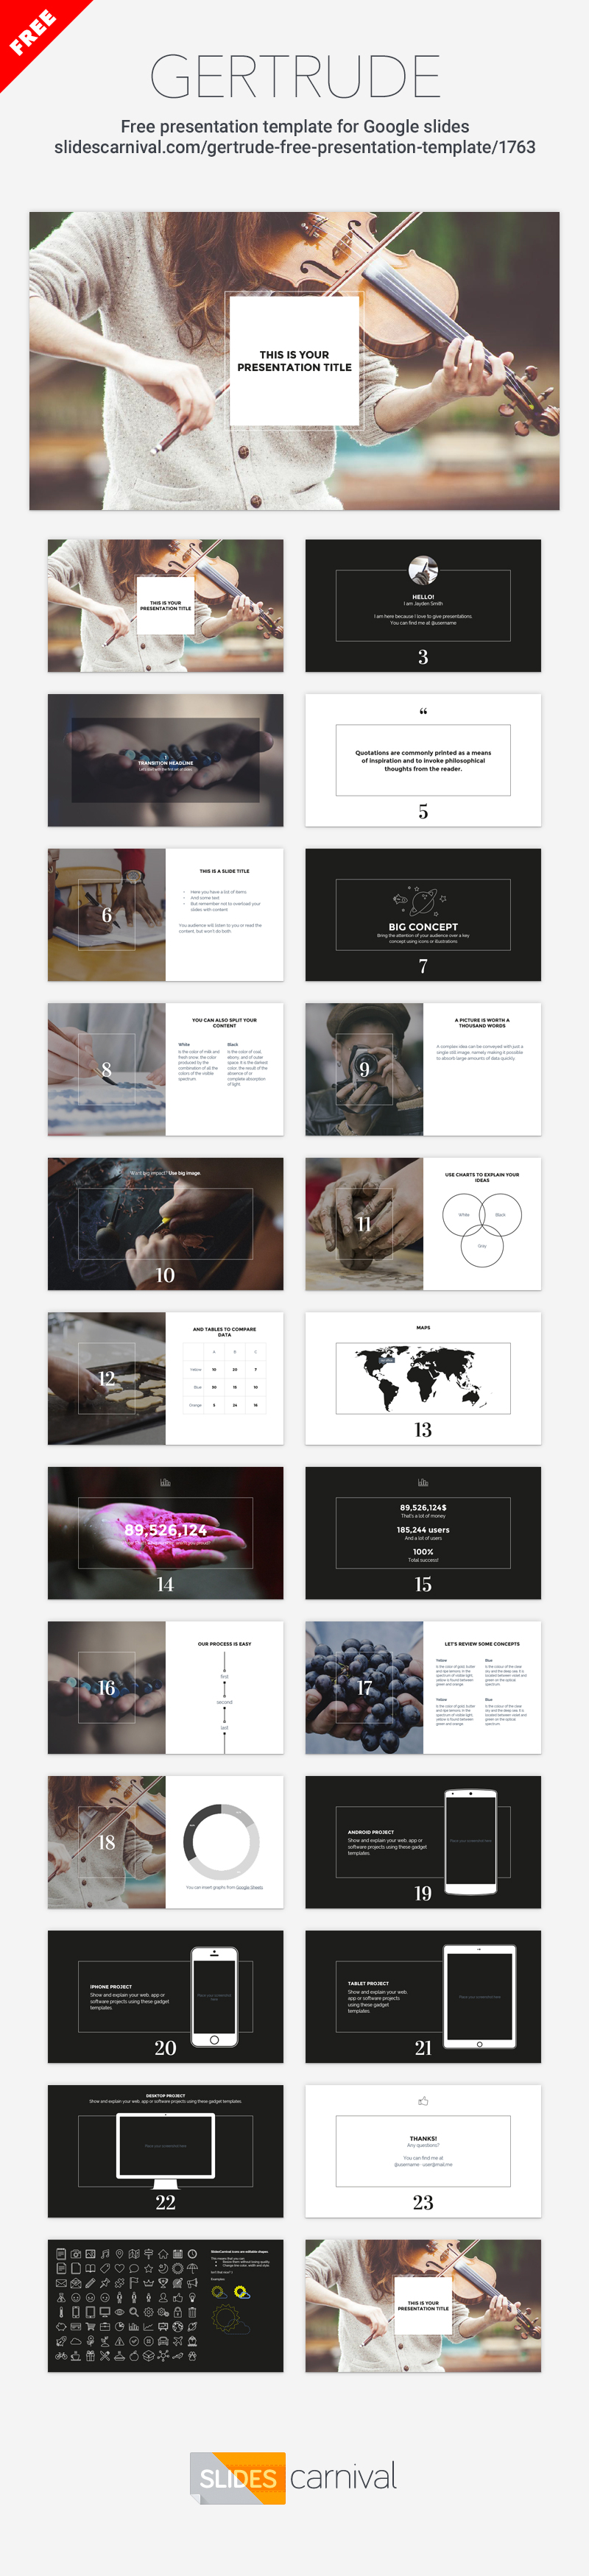 A free presentation template for Powerpoint or Google Slides. This ...